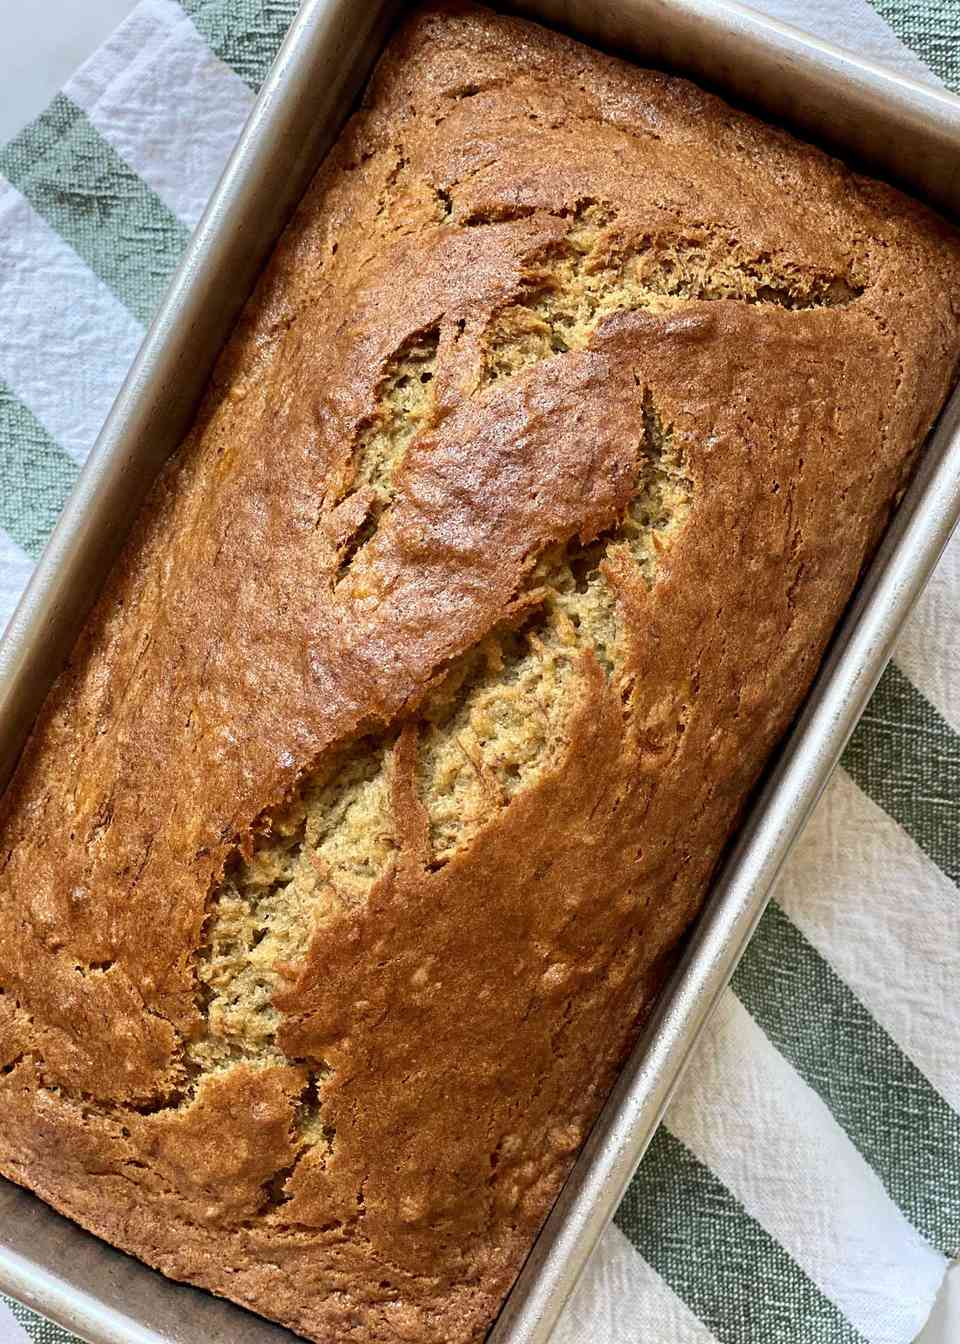 The best gluten free banana bread in a pan with a linen towel underneath.